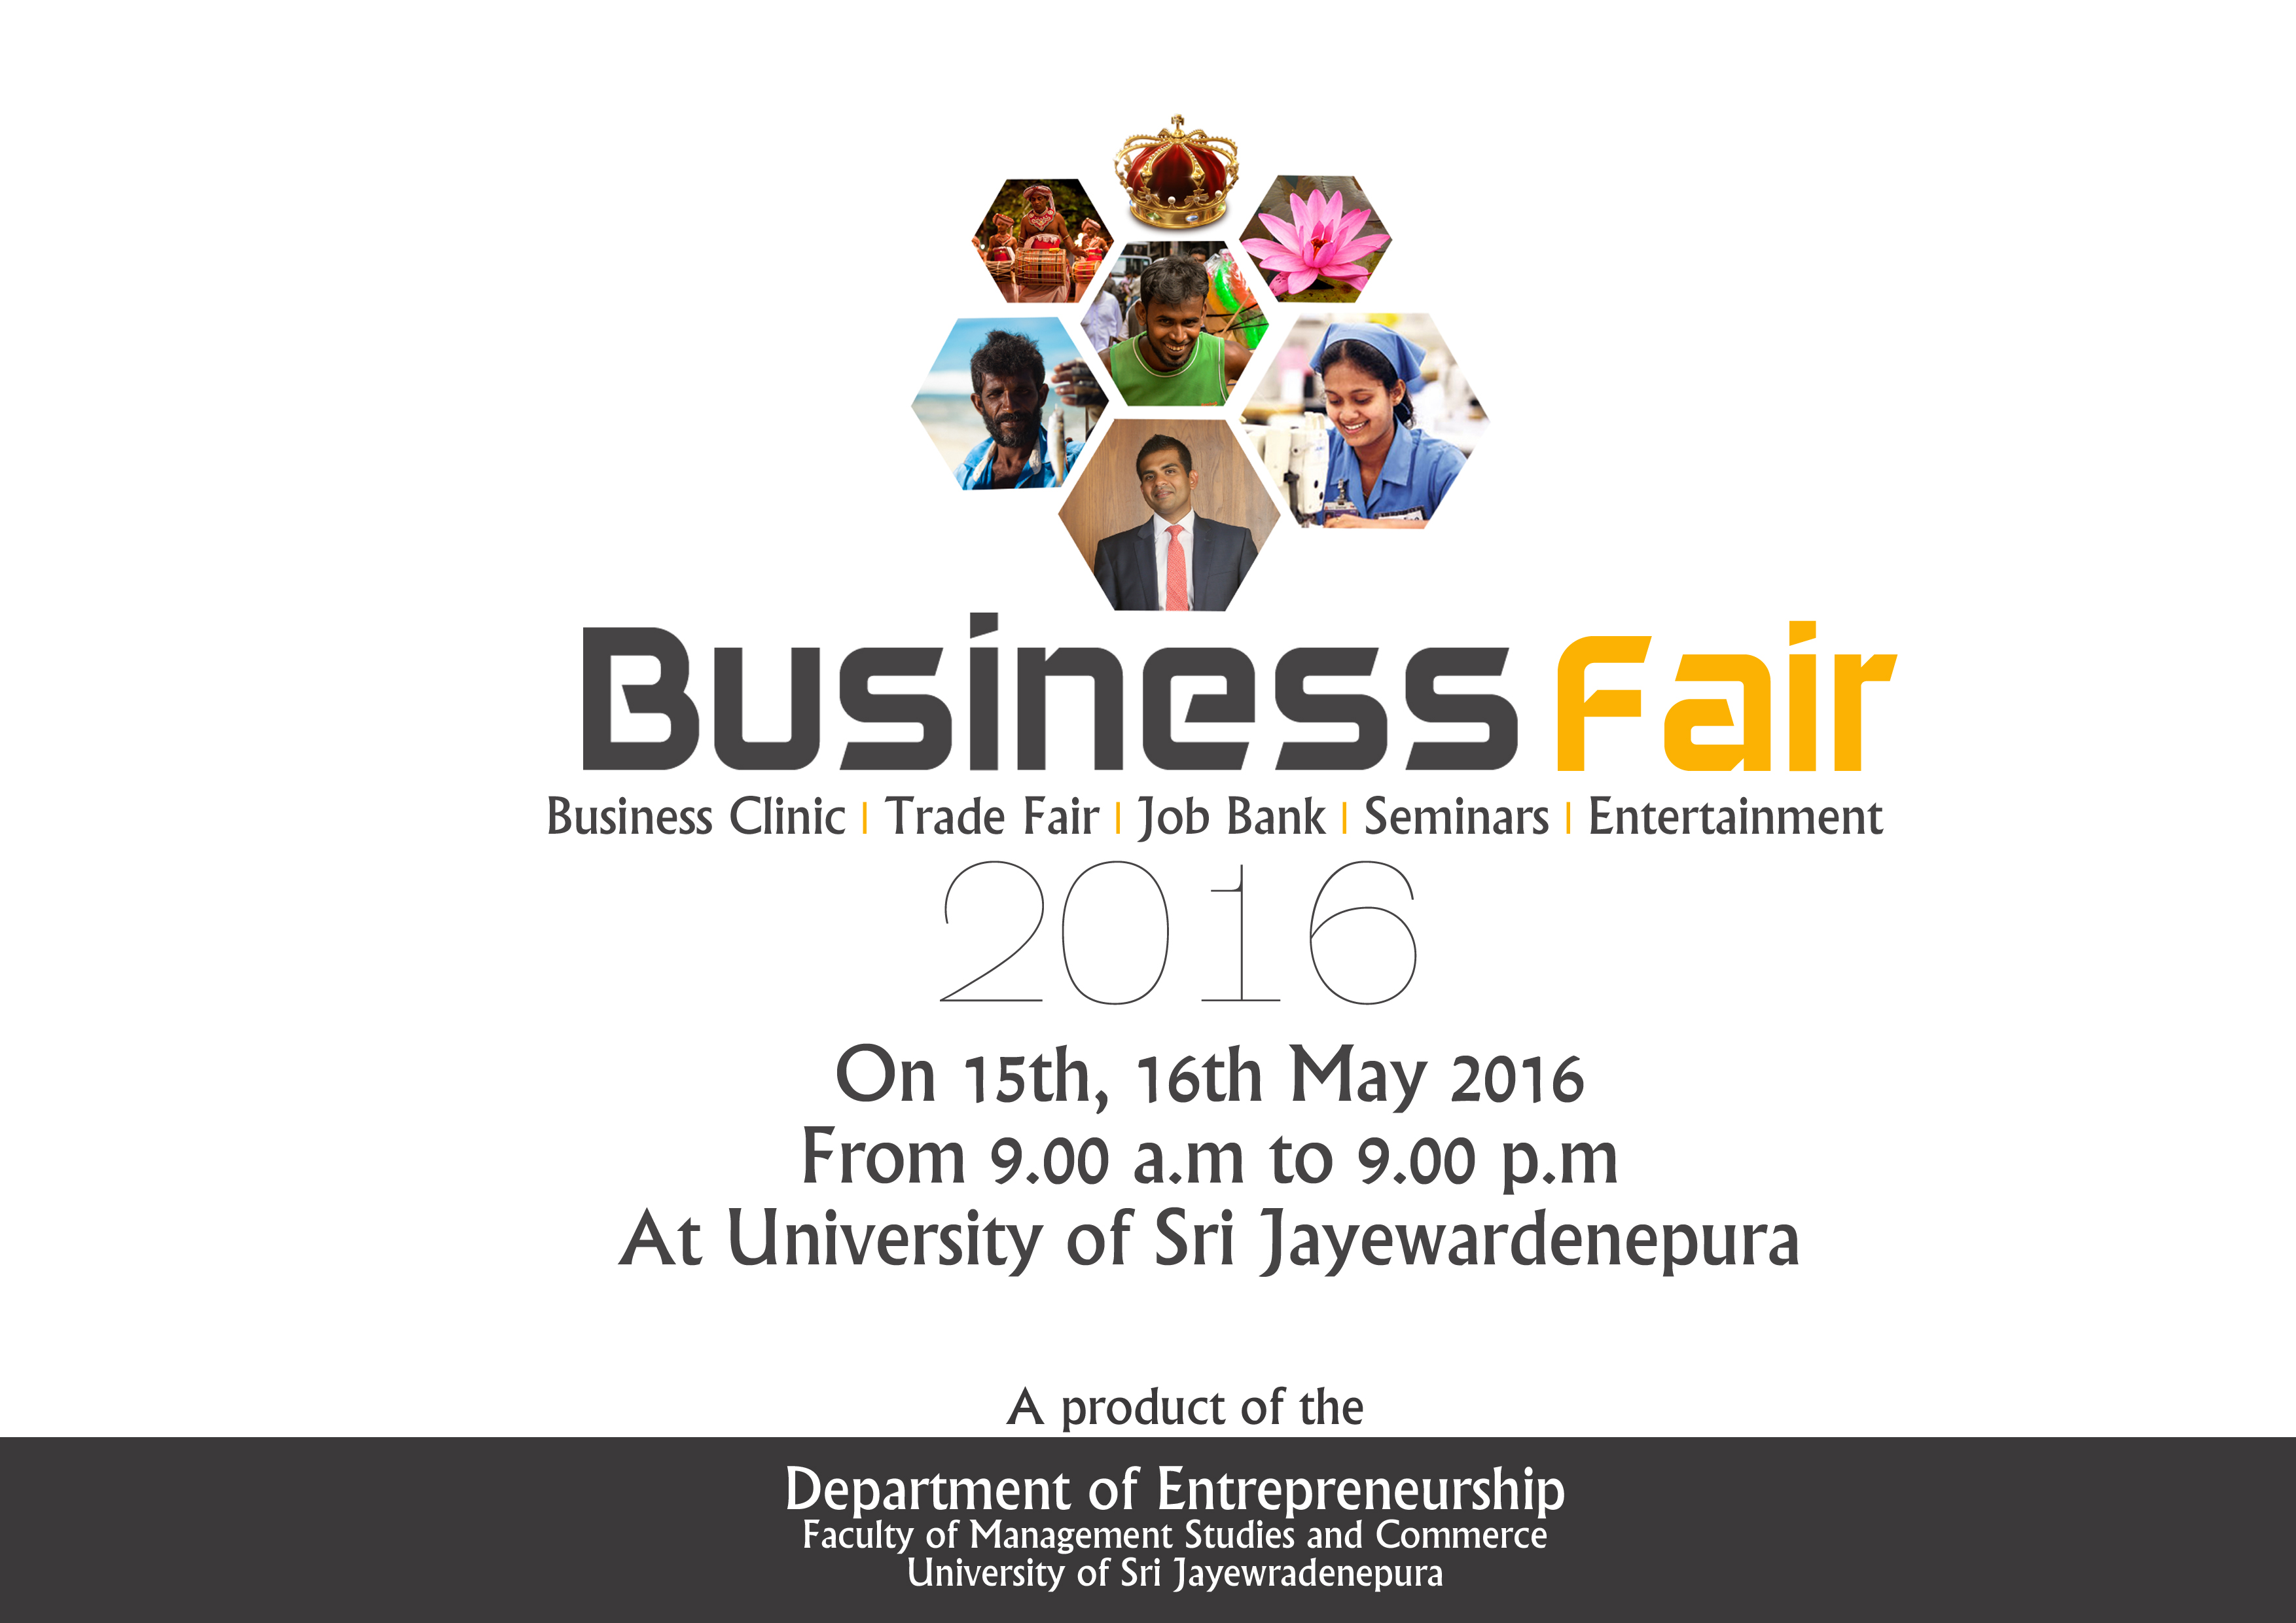 Business Fair Poster copy Department of Entrepreneurship : Business Fair Poster copy from mgt.sjp.ac.lk size 3508 x 2480 jpeg 1327kB